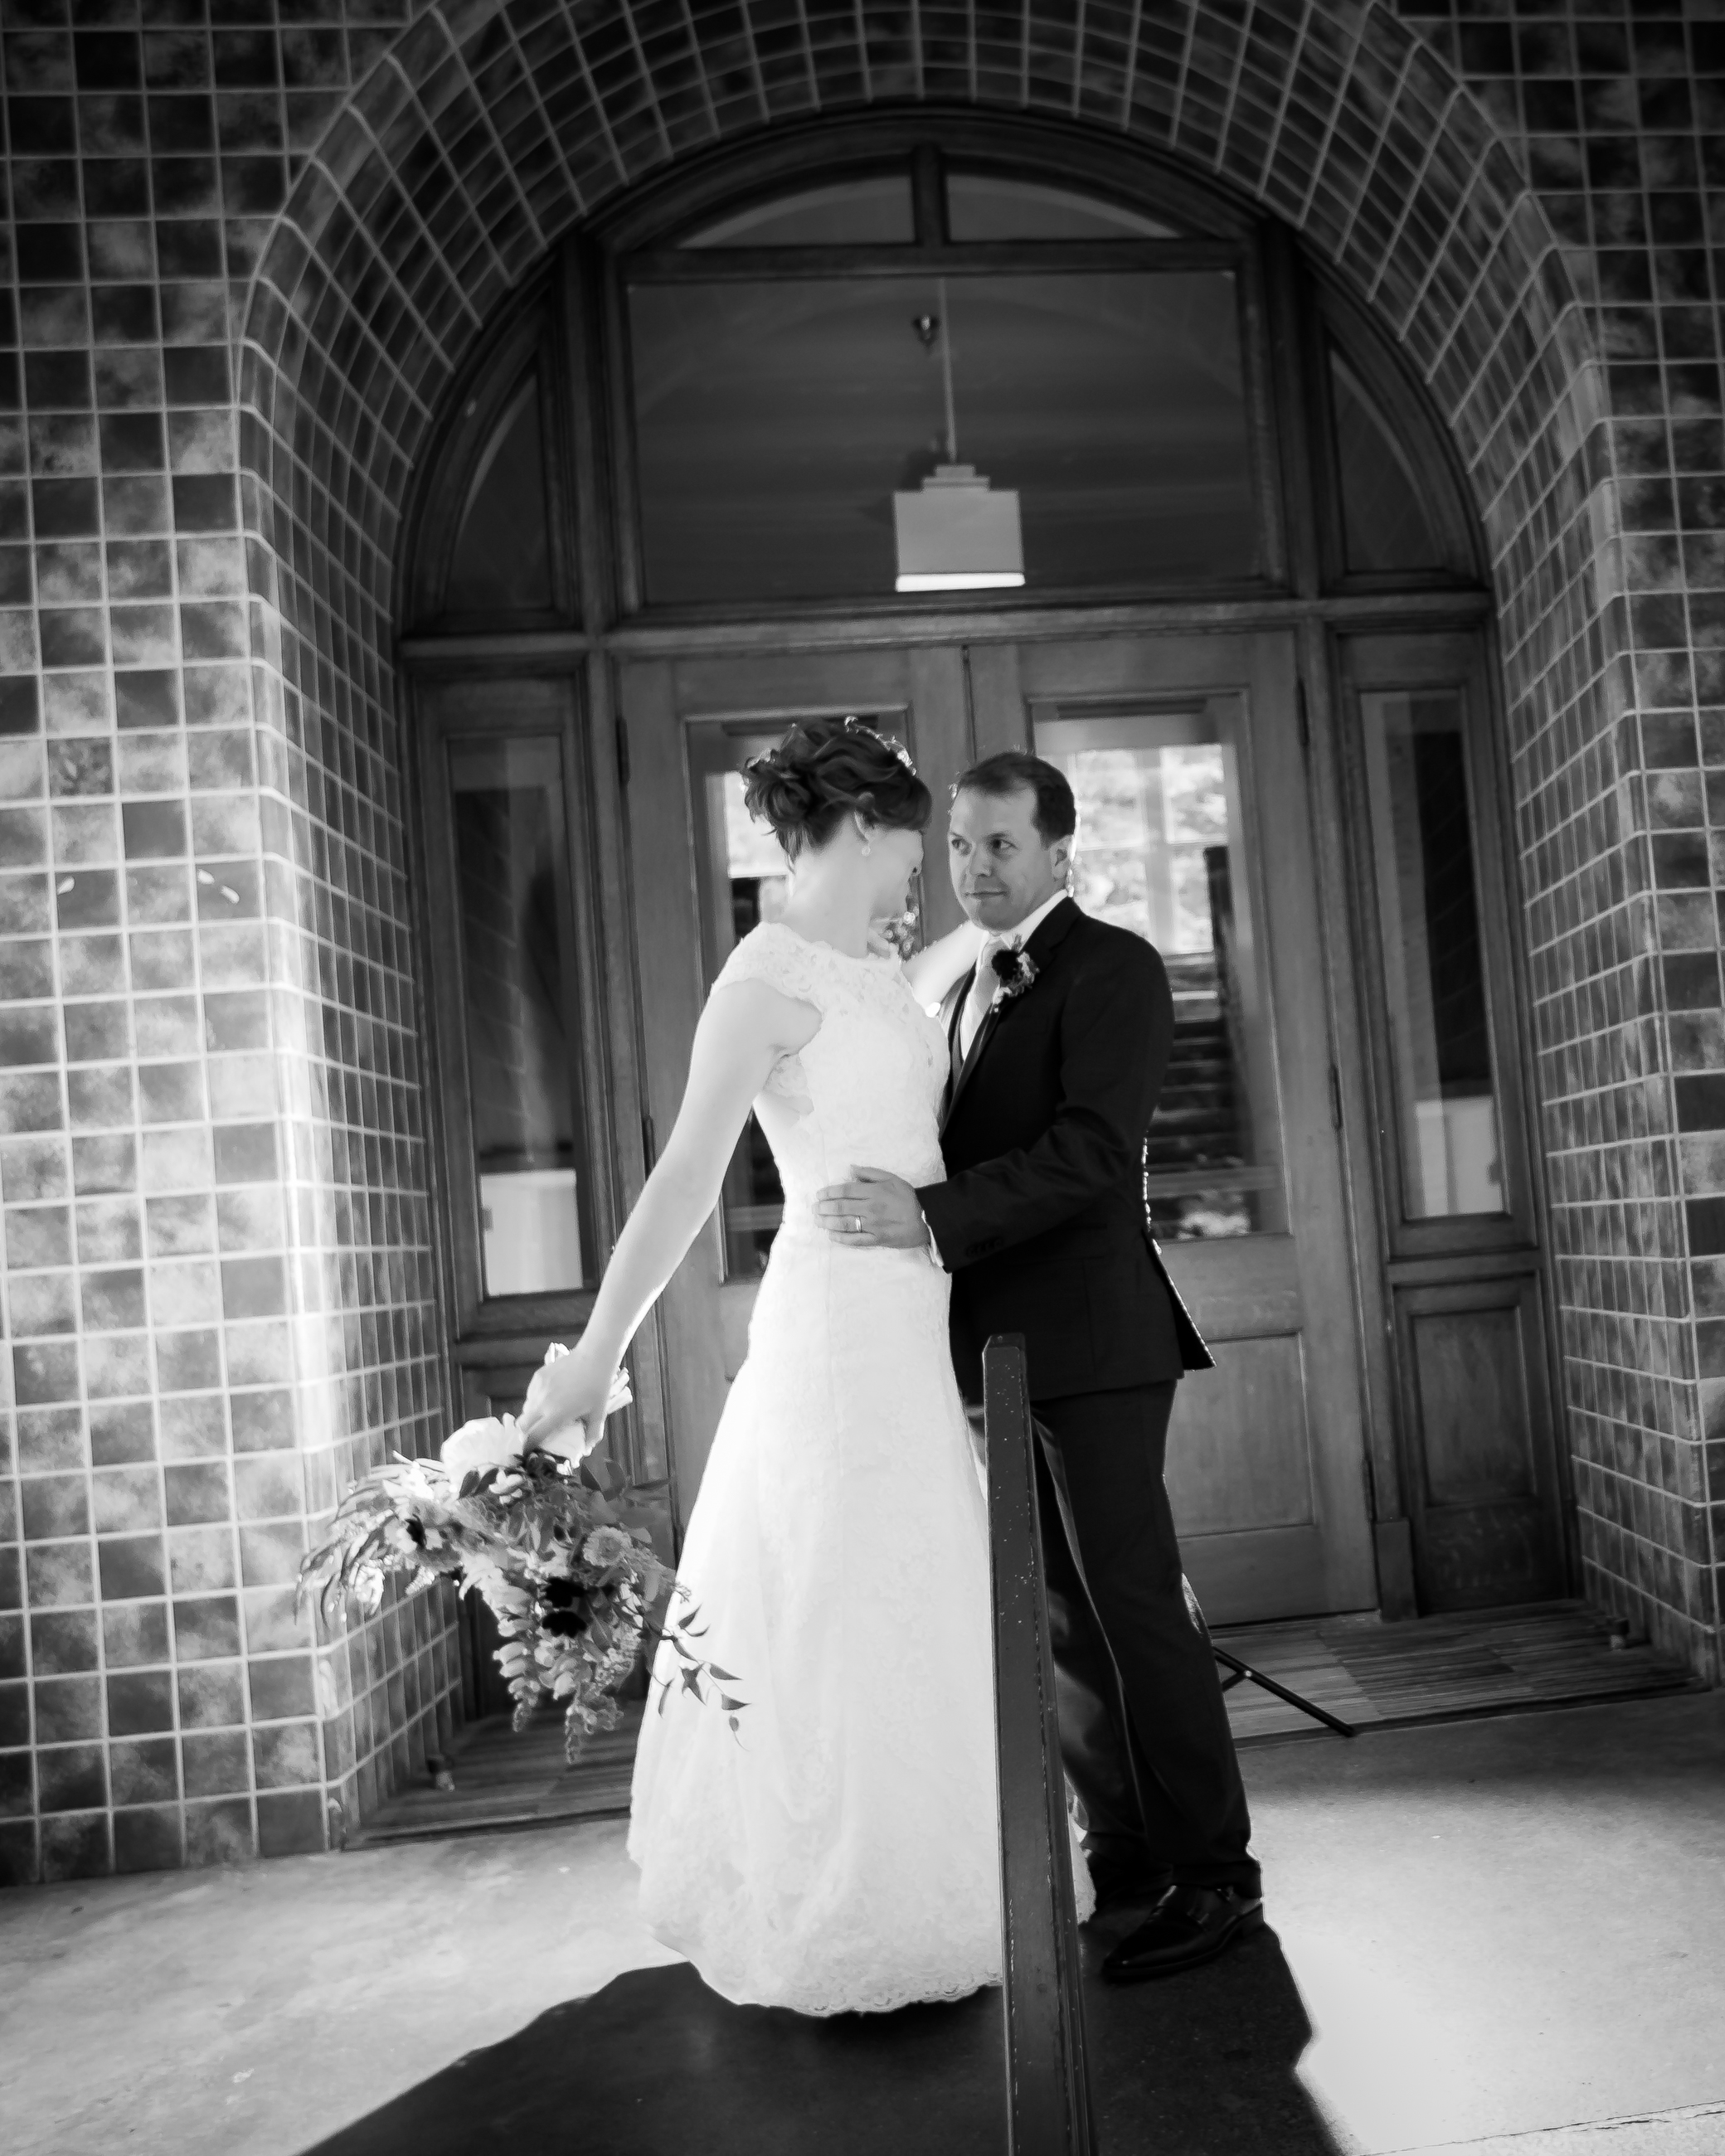 Bellingham Washington wedding, dramatic light at Old Main, Western Washington University